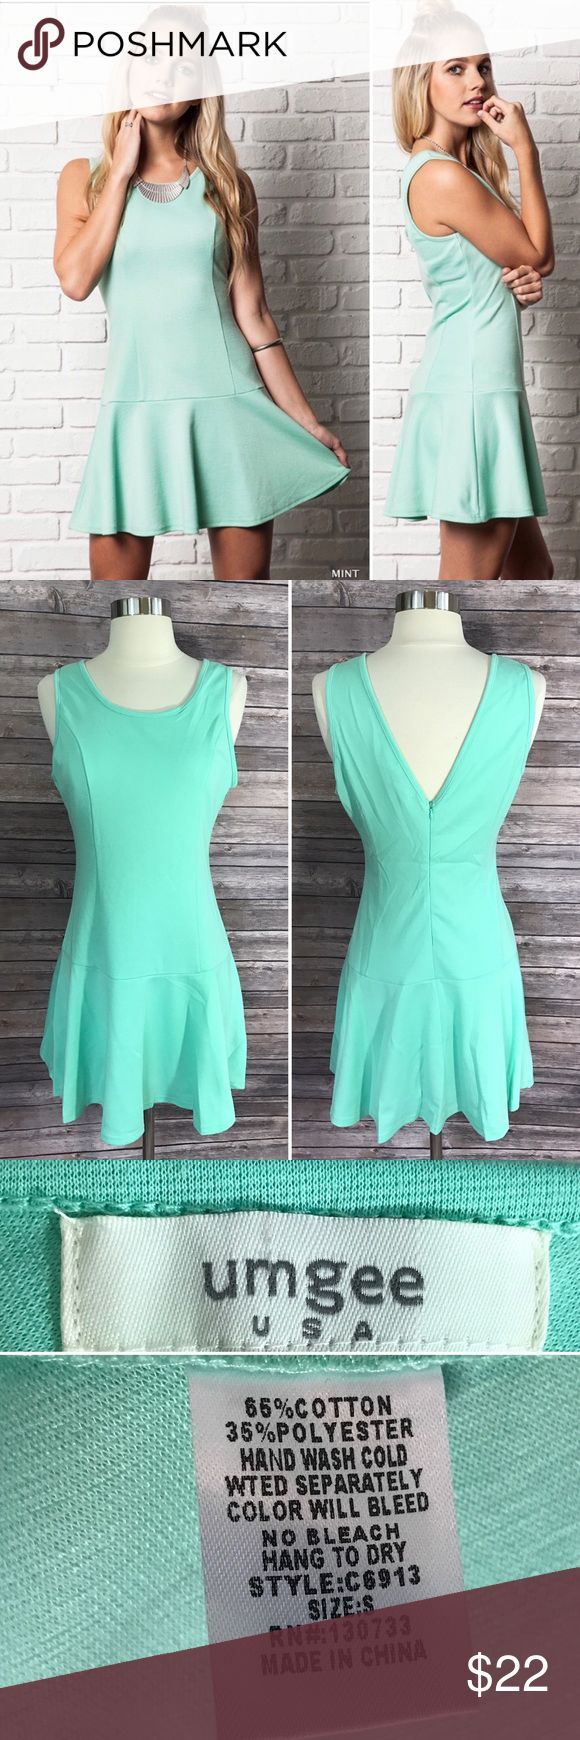 NEW Umgee Dress Mint Green Solid Fit Flare S M L Comfortable and stylish Umgee dress in mint green. Available in Small, Medium, and Large. See photos for size chart. Umgee Dresses